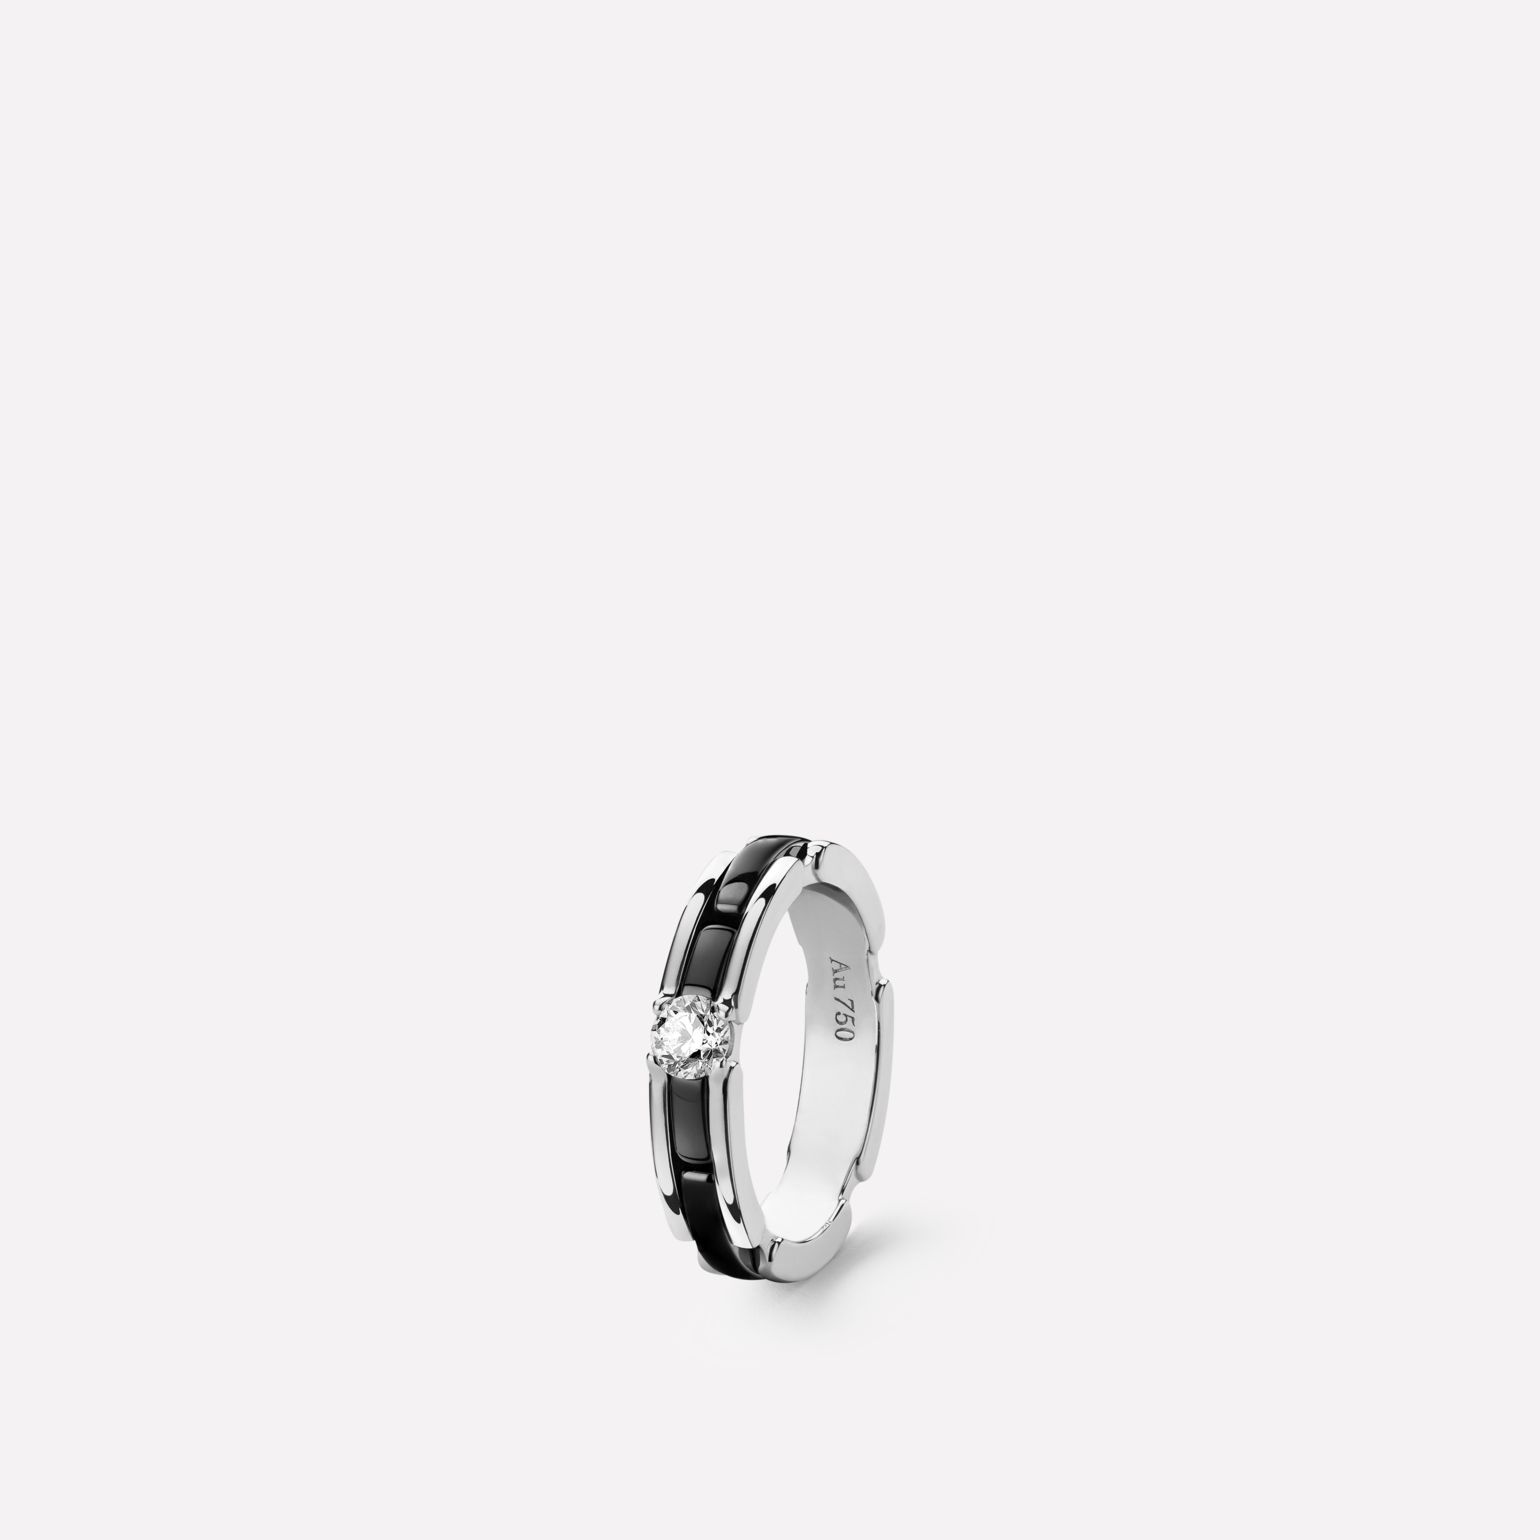 Ultra ring Ultra ring, in black ceramic, 18K white gold and one center diamond